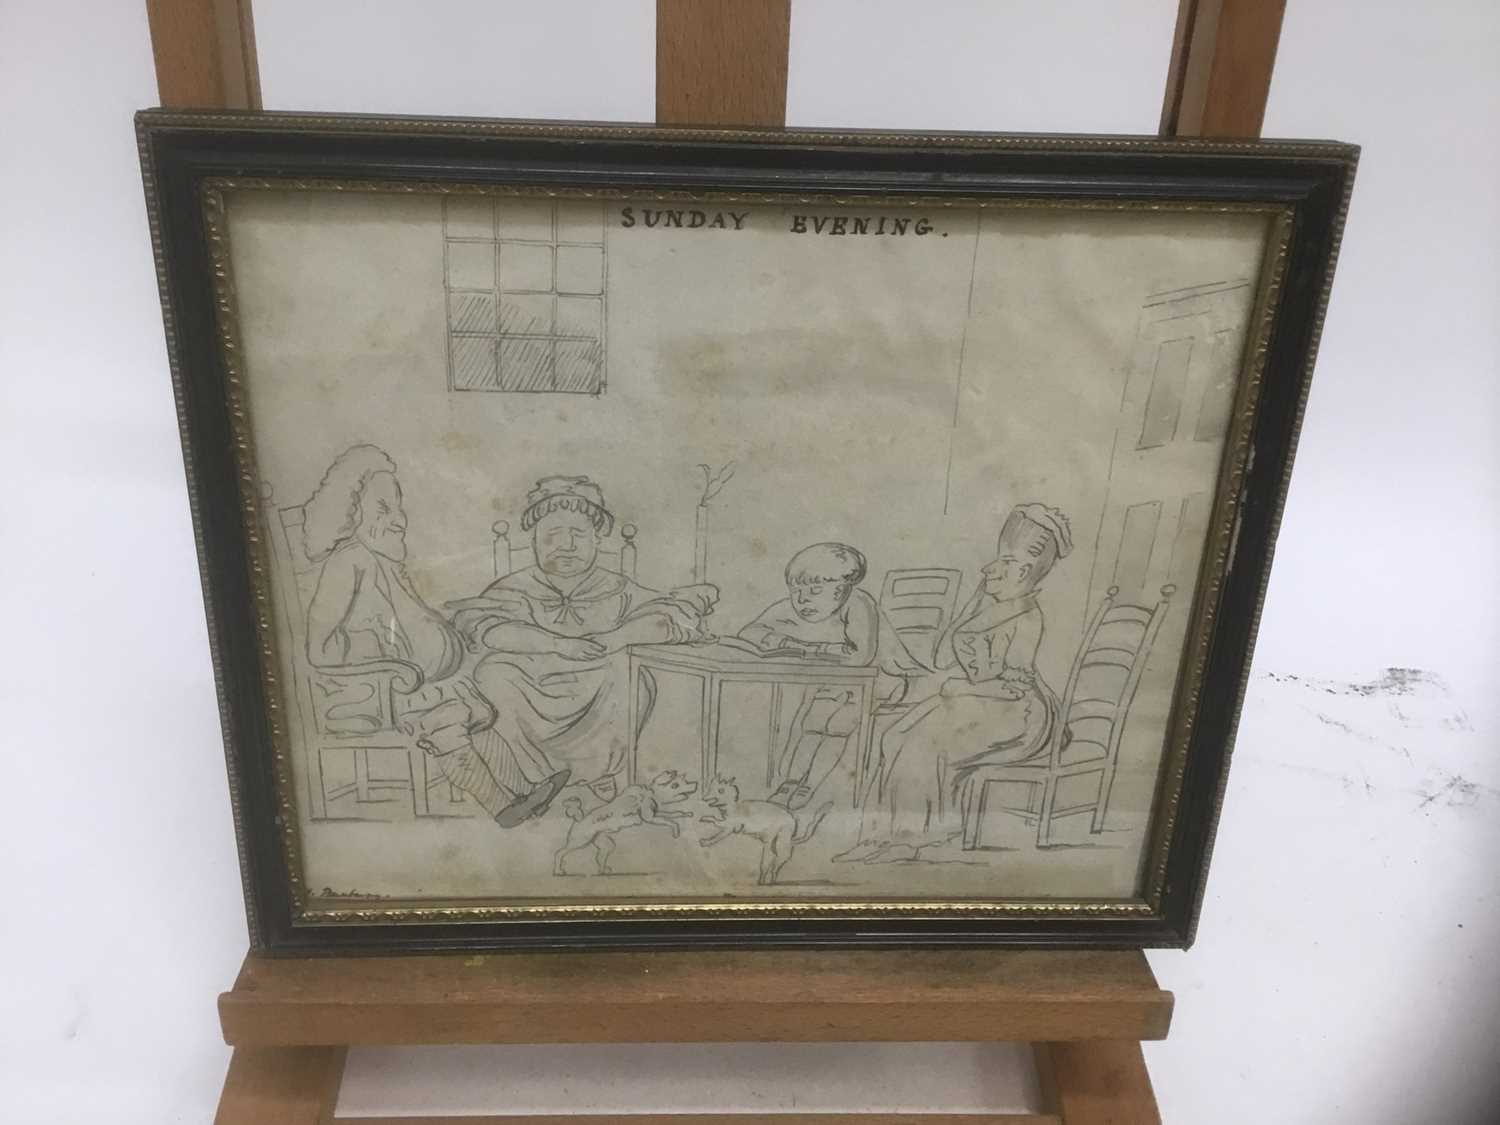 After Henry William: Bunbury (1750-1811) pen and ink sketch - Sunday Evening (copy after the engrav - Image 2 of 9